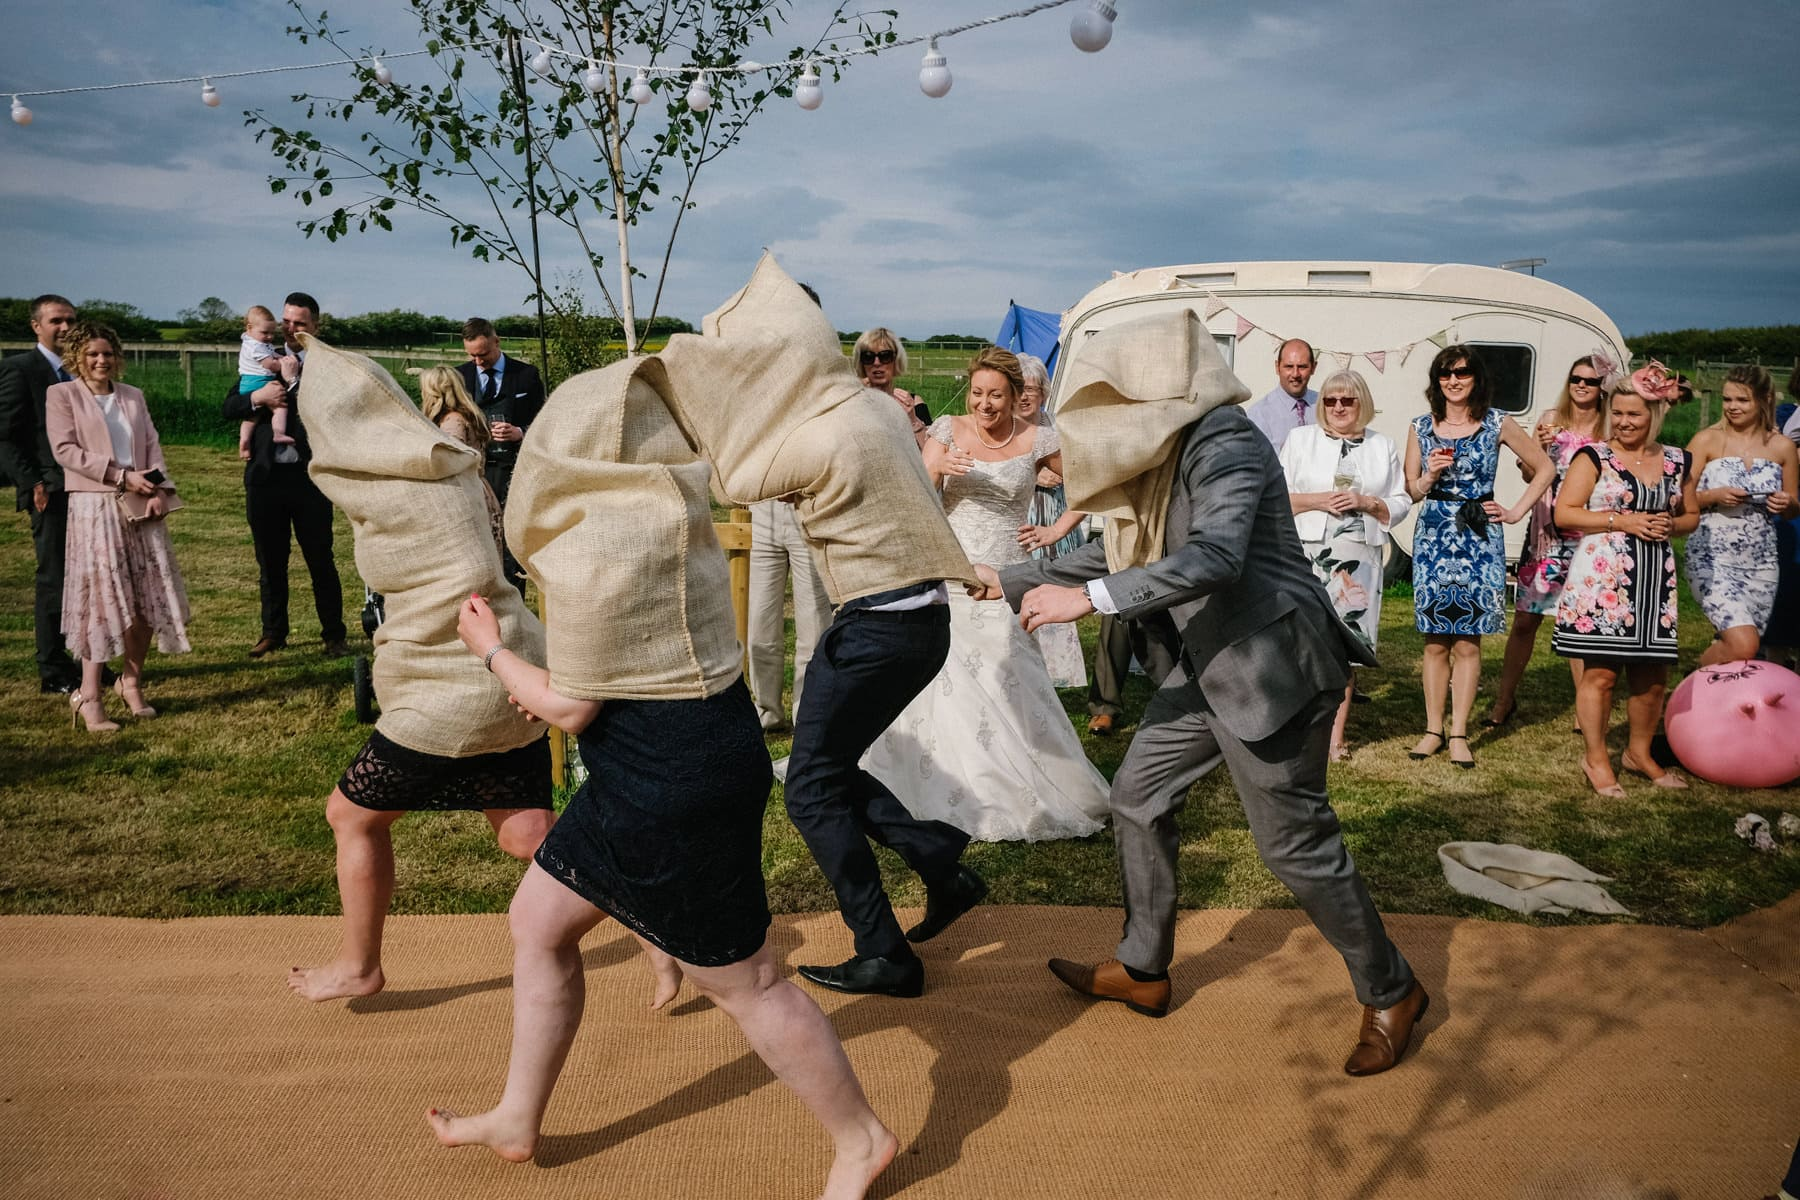 wedding guests racing outside with potato sacks on their heads